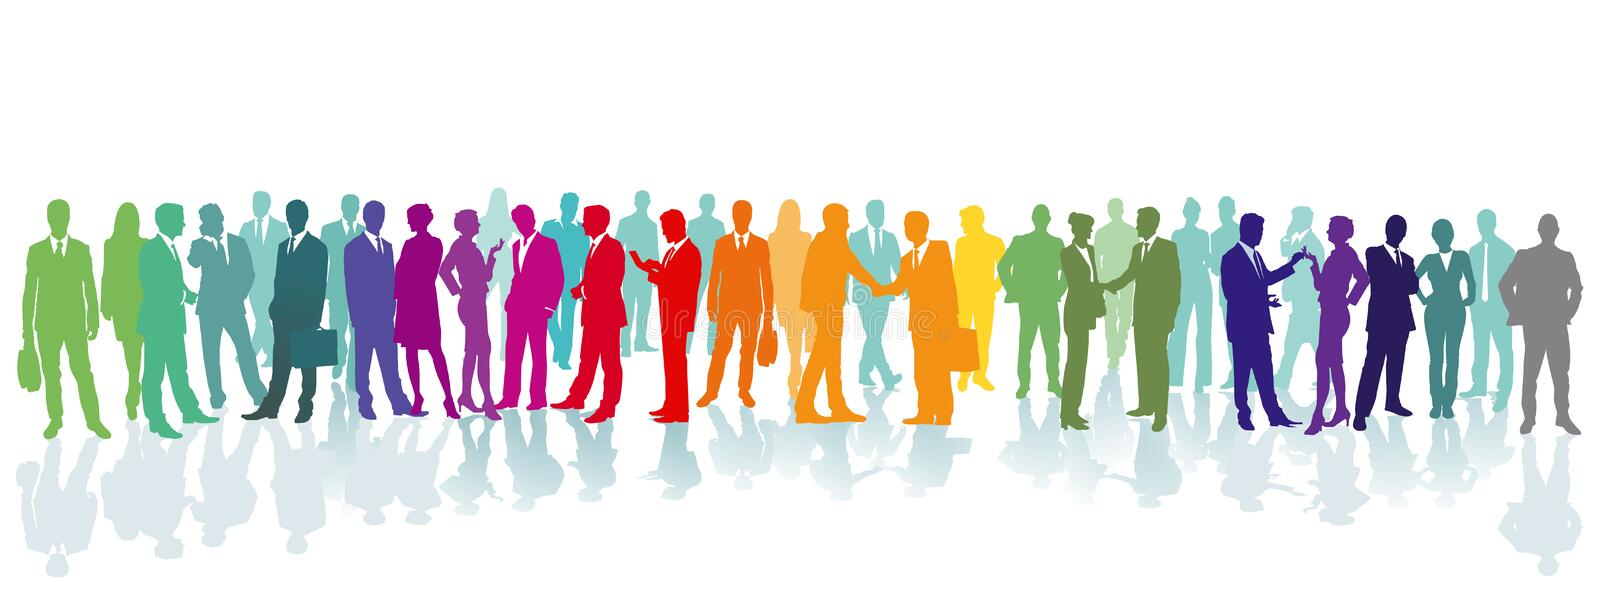 Colorful crowd on a place. Illustration vector illustration